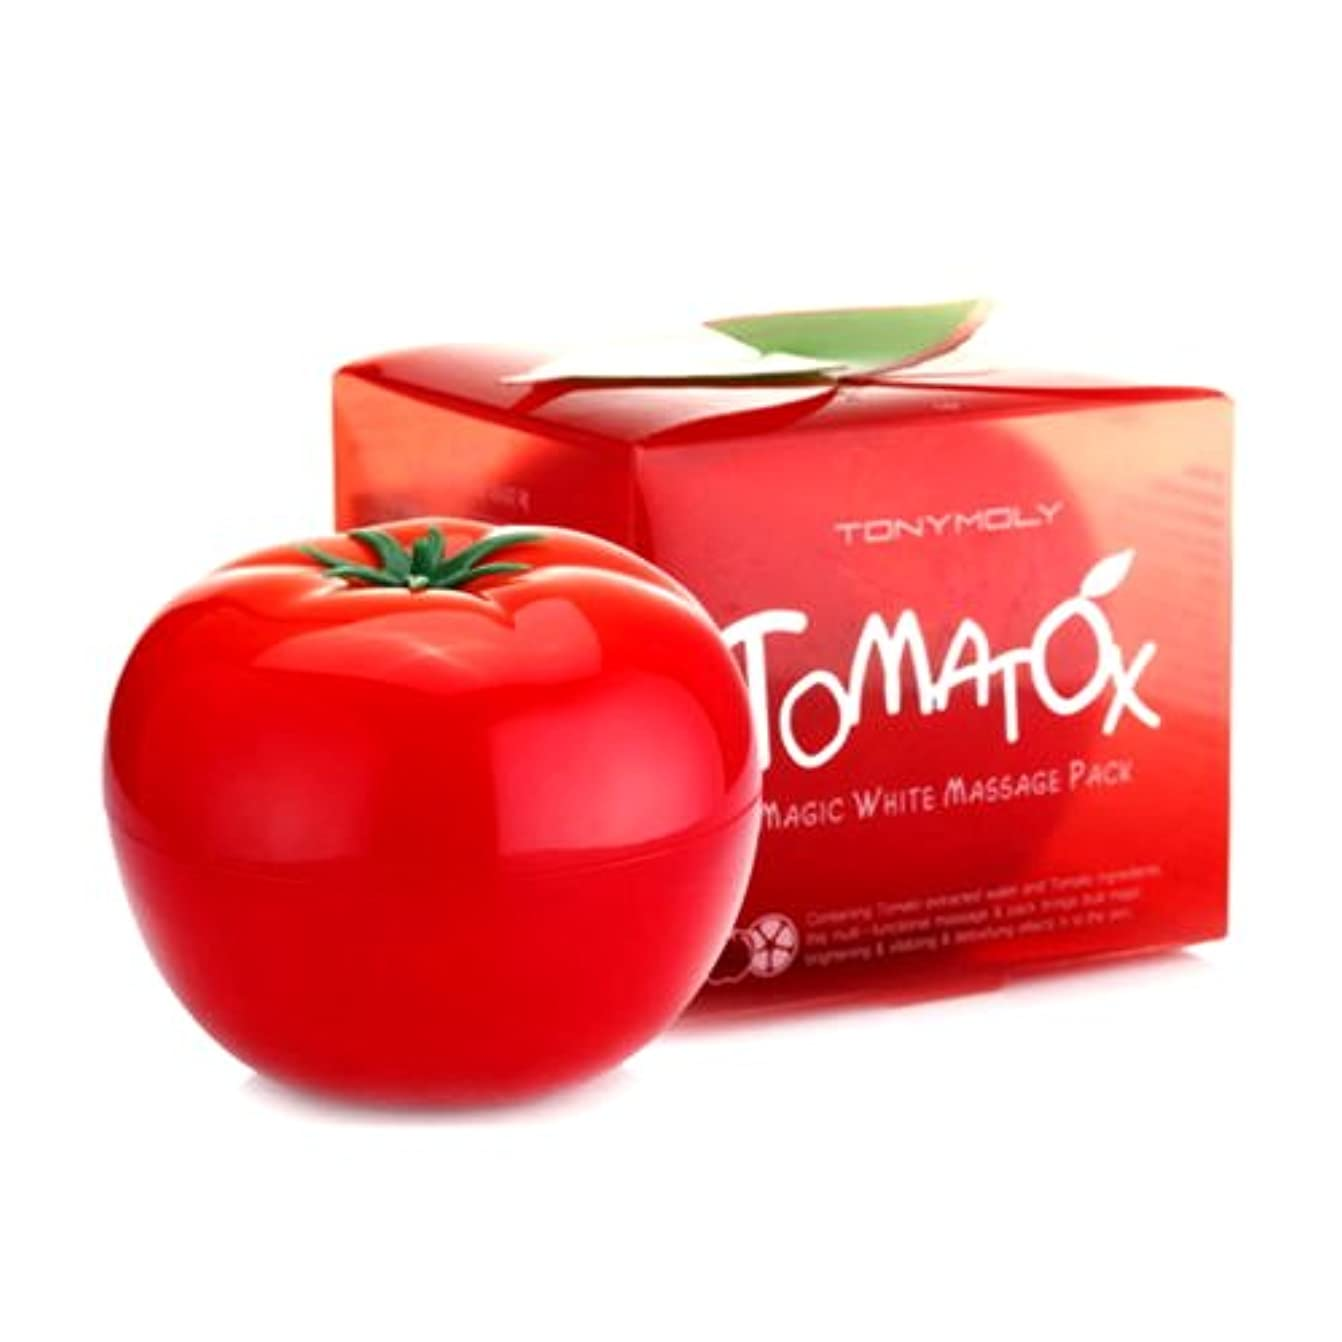 路地奪うまだ(3 Pack) TONYMOLY Tomatox Magic Massage Pack (並行輸入品)